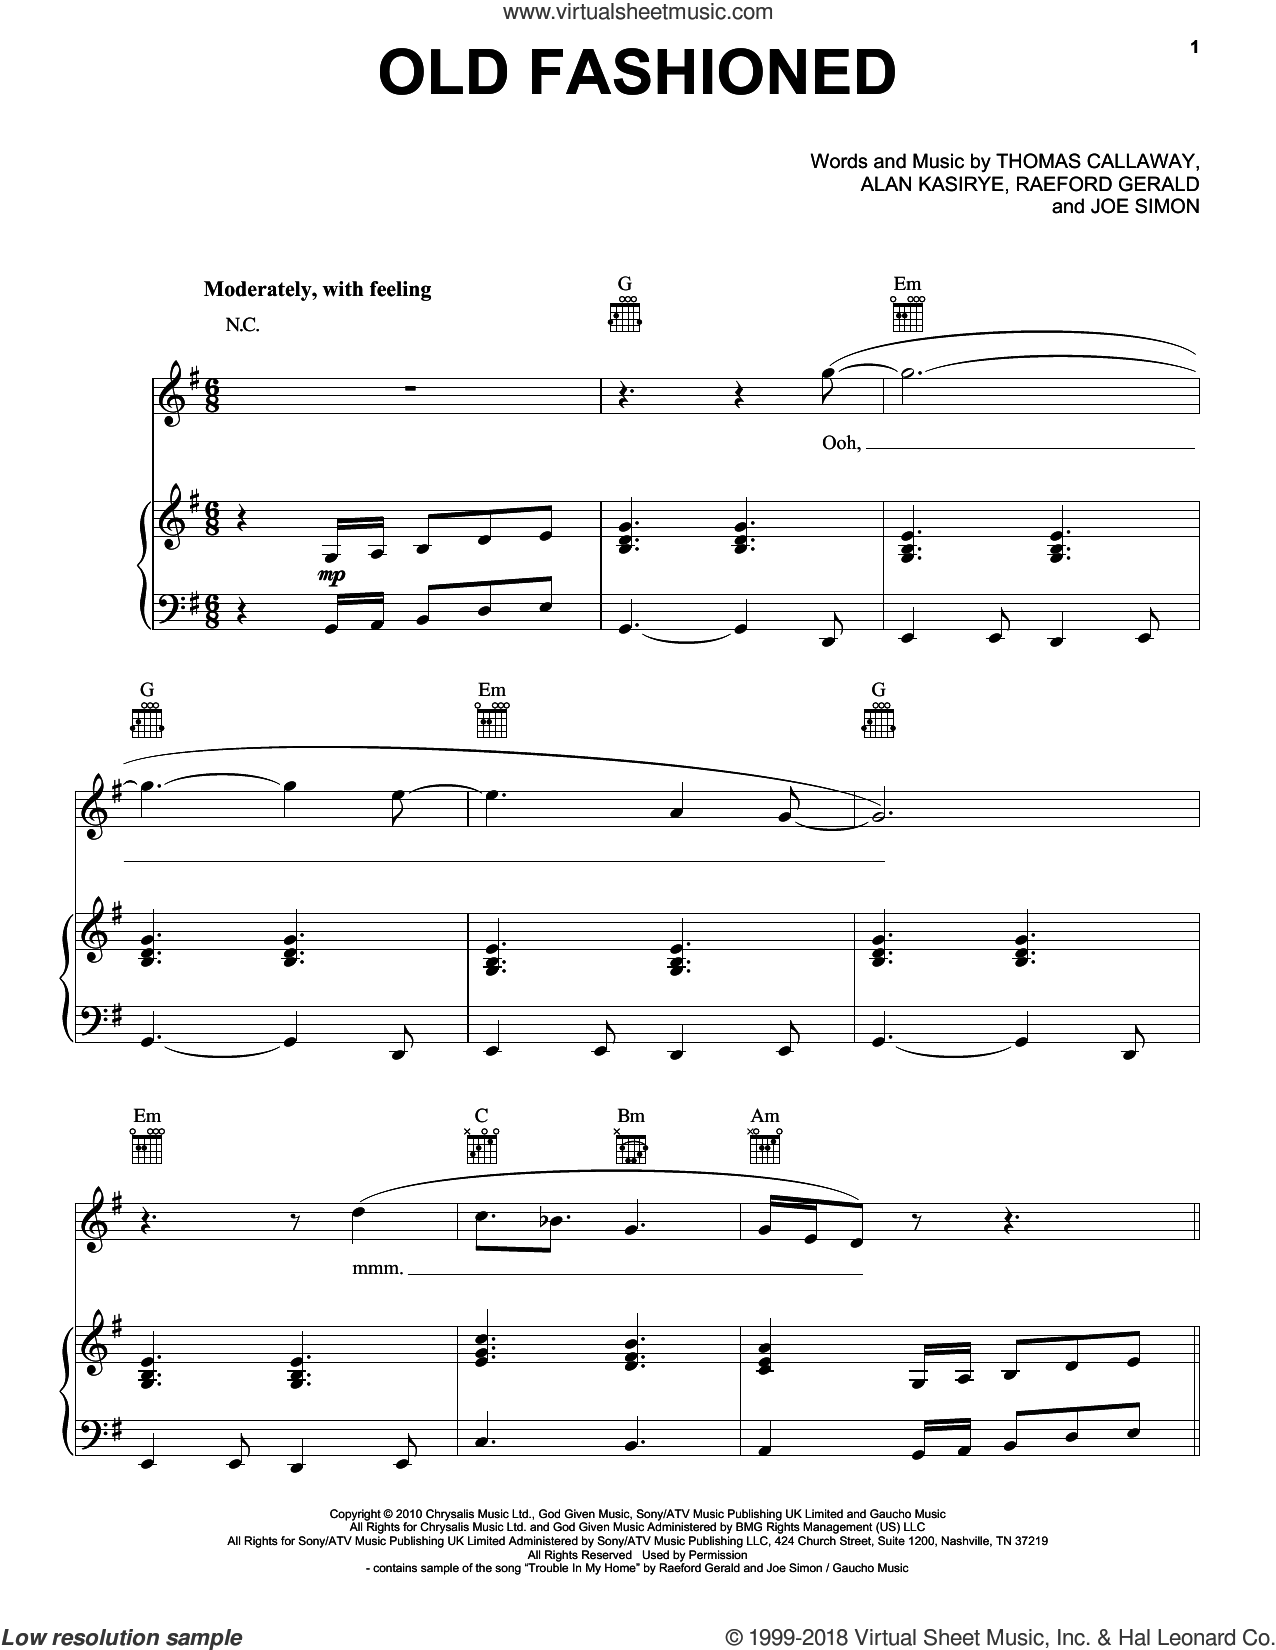 Old Fashioned sheet music for voice, piano or guitar by Thomas Callaway